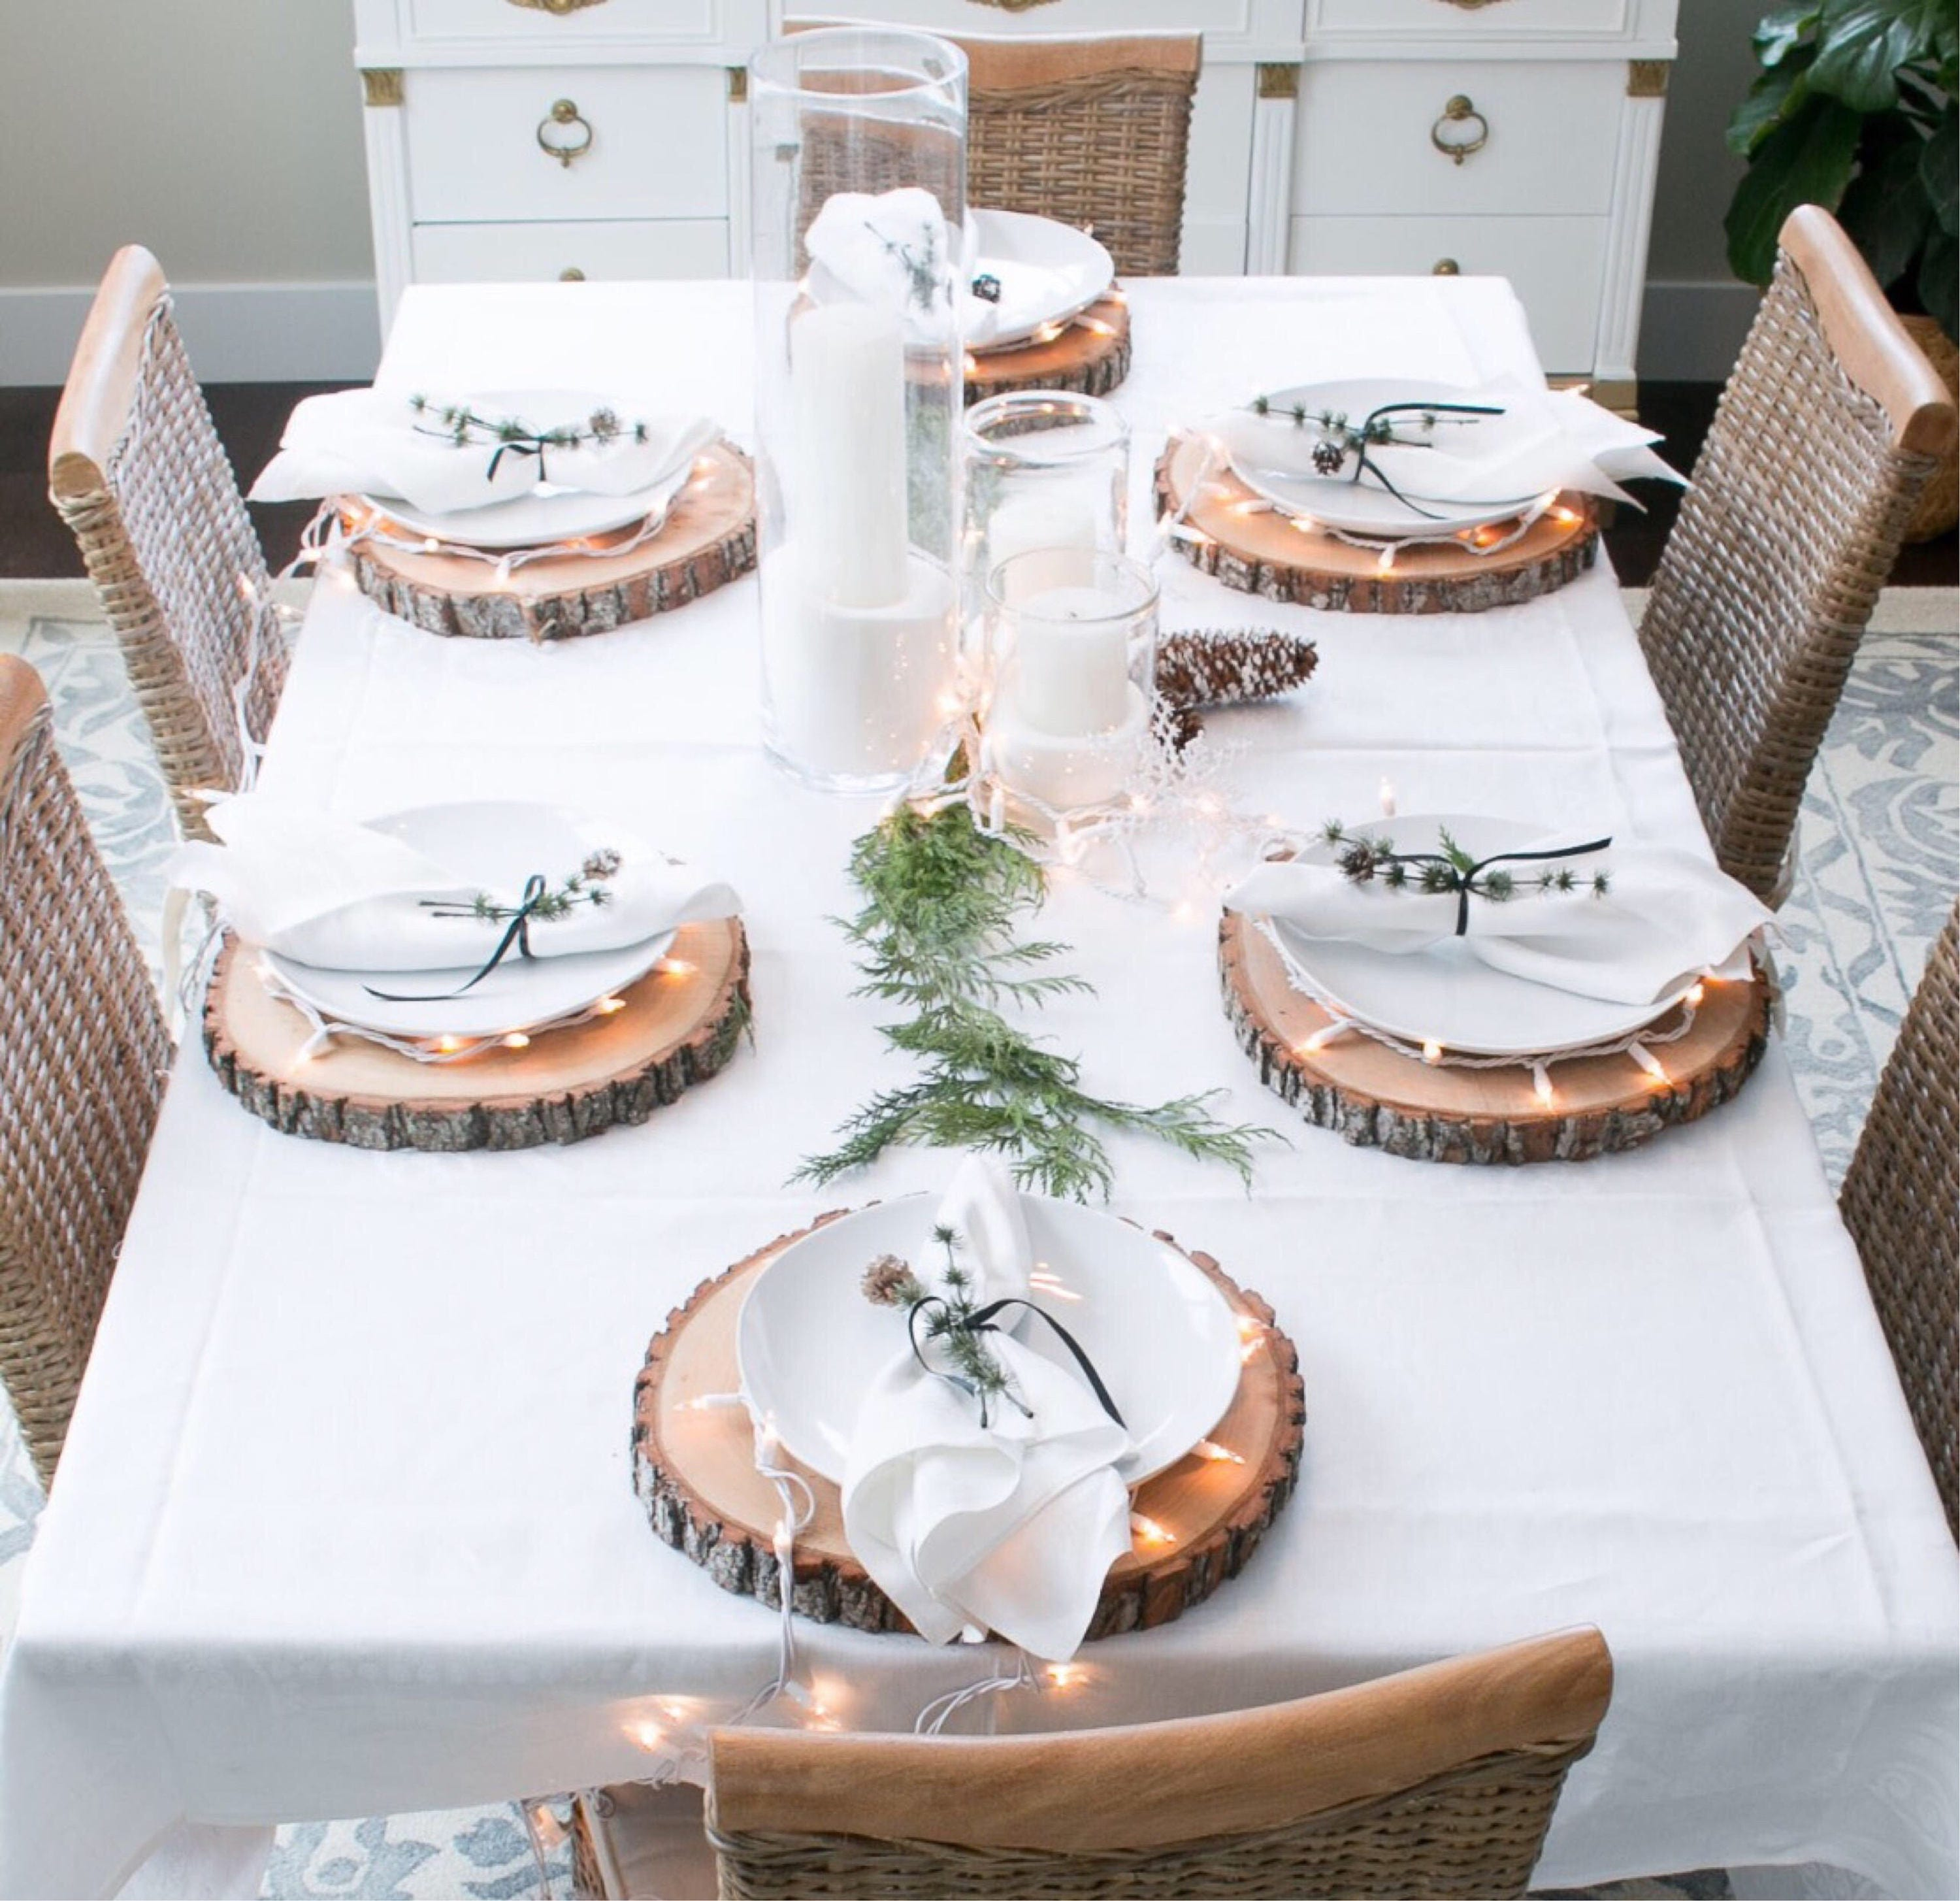 10 treated wood slices for wedding centerpieces wedding wood cookies wood rounds tree cookies tree junglespirit Gallery